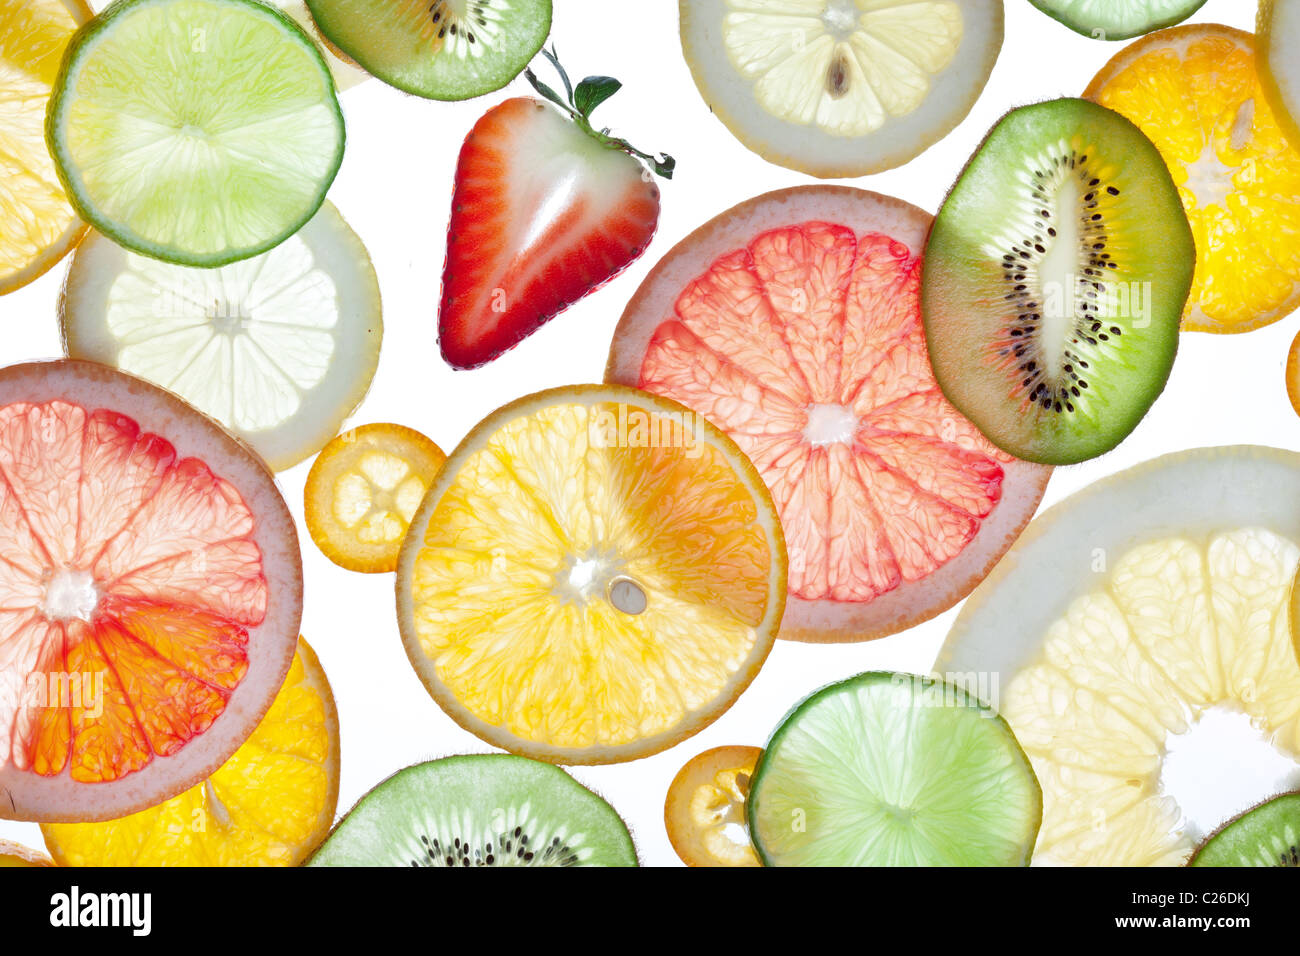 Back projected citrus slices. - Stock Image